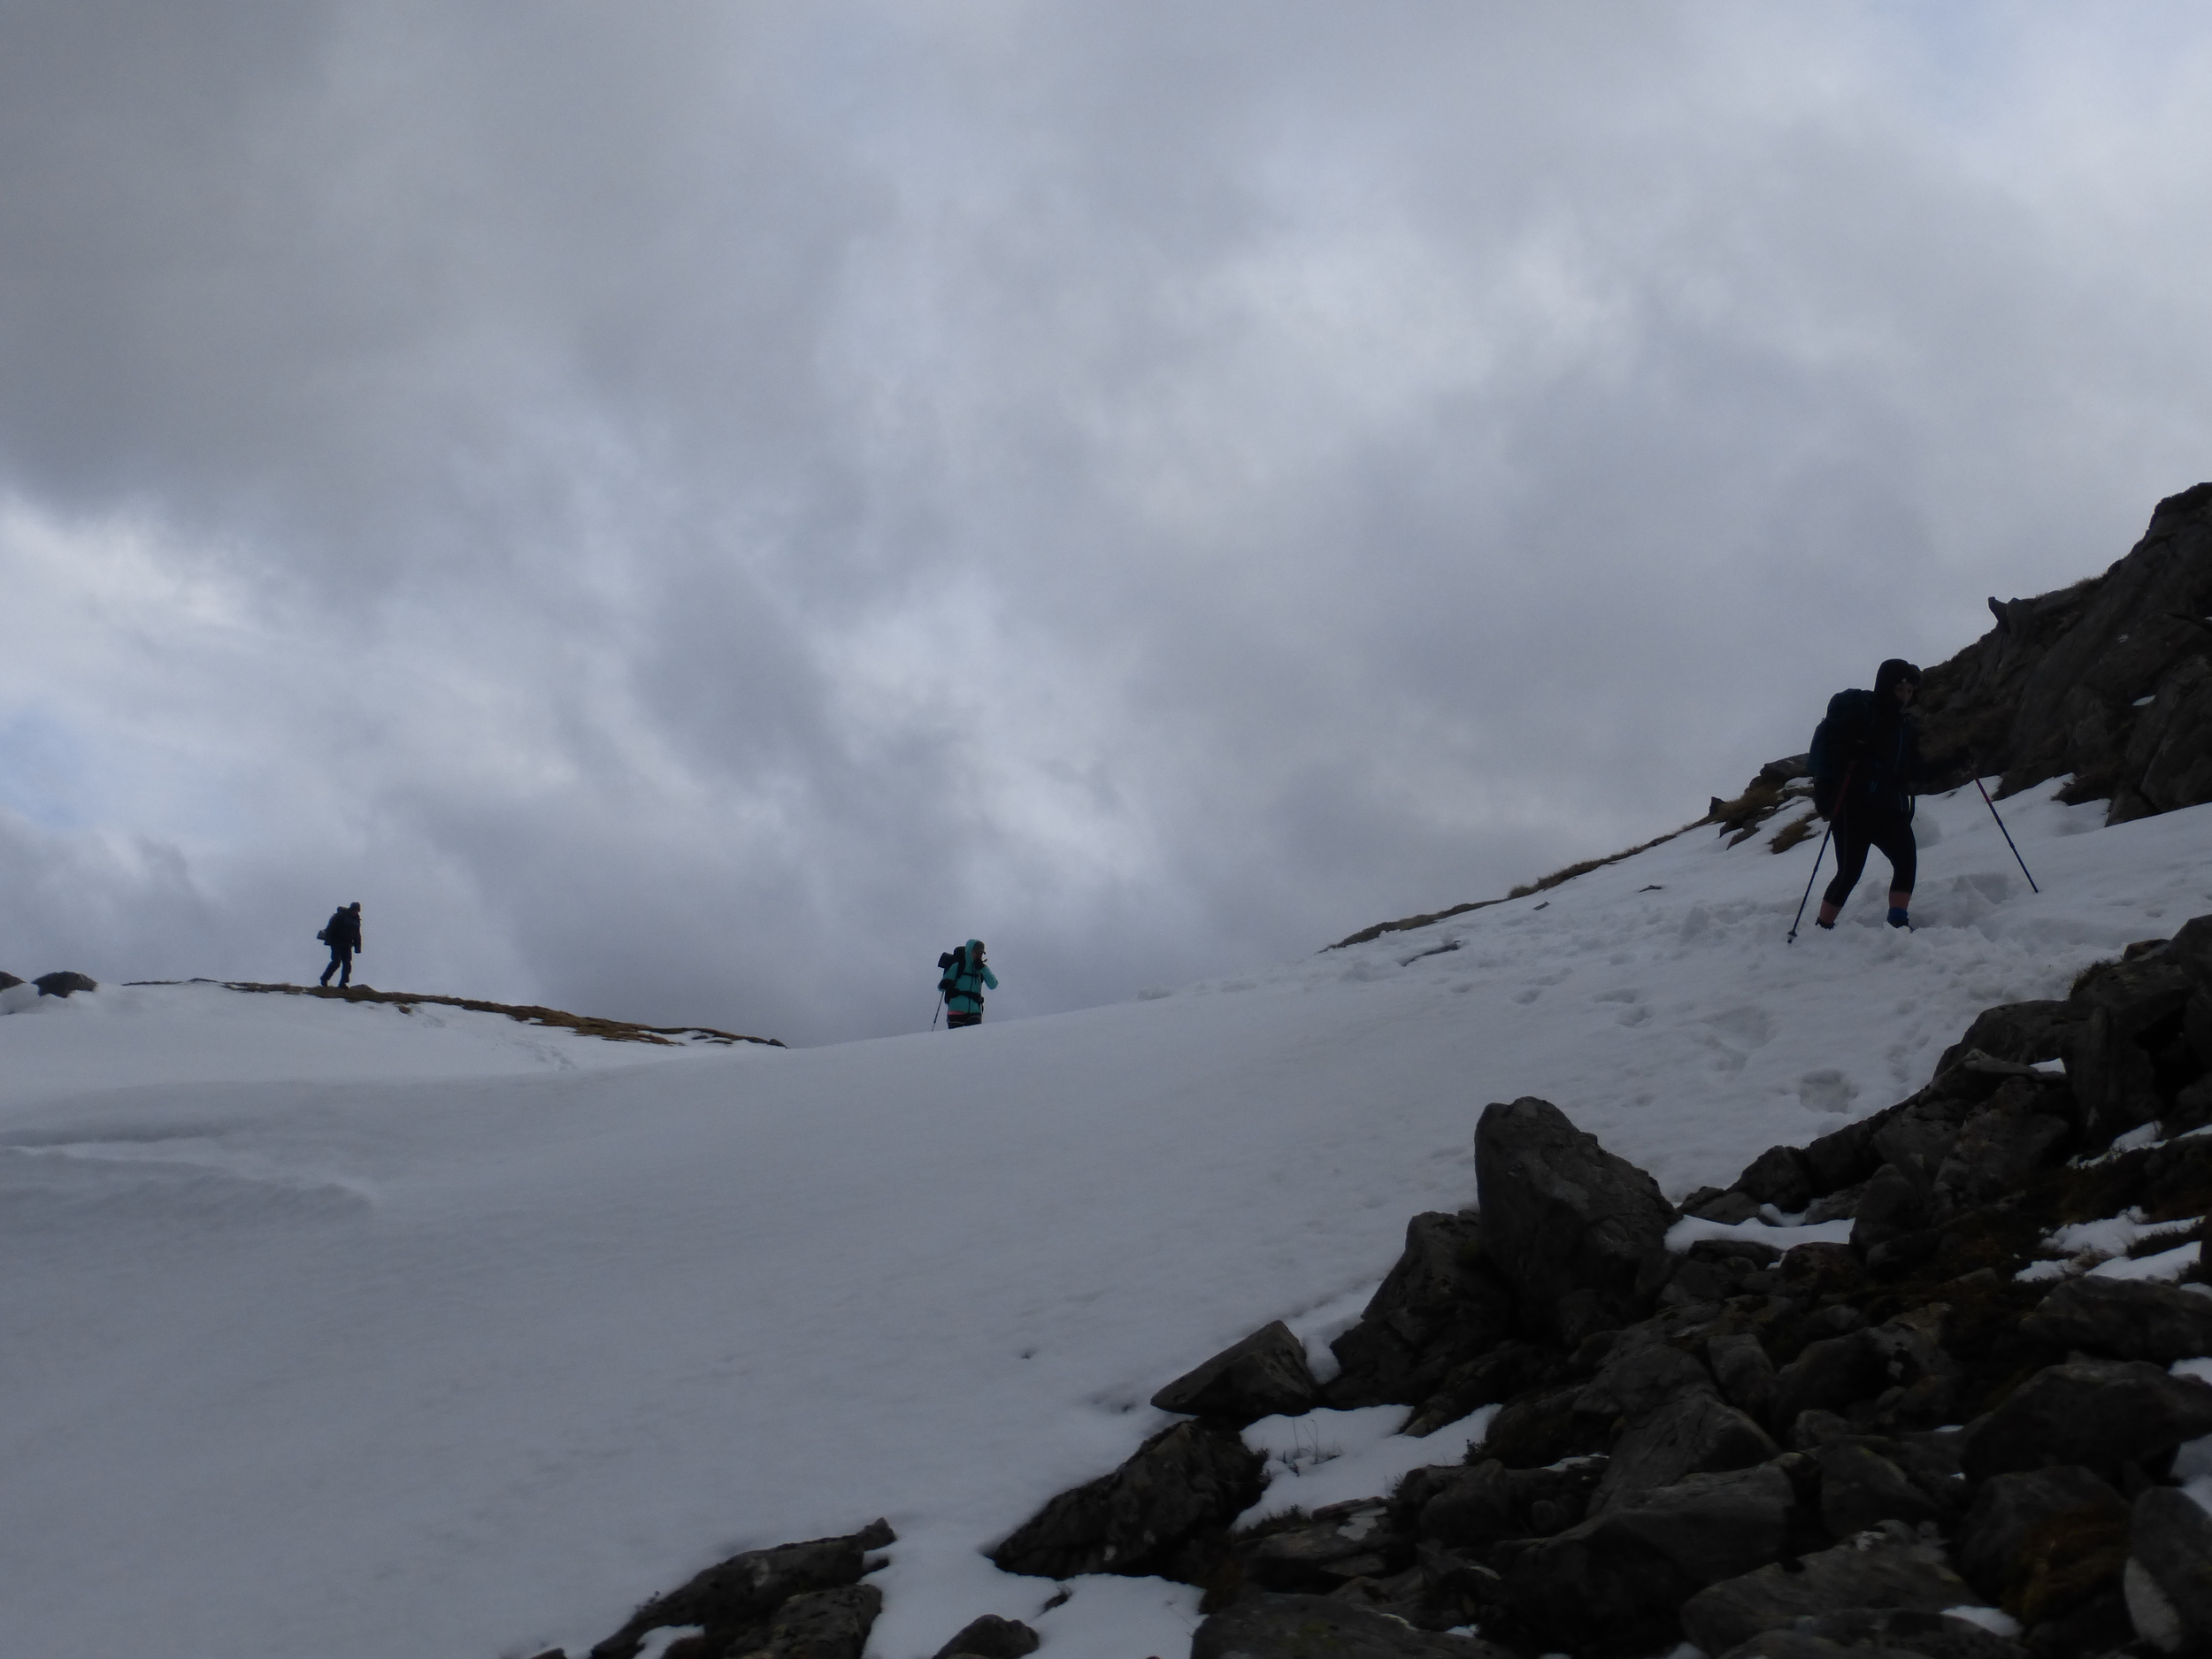 Things were a bit treacherous at Forcan Ridge until we found the path